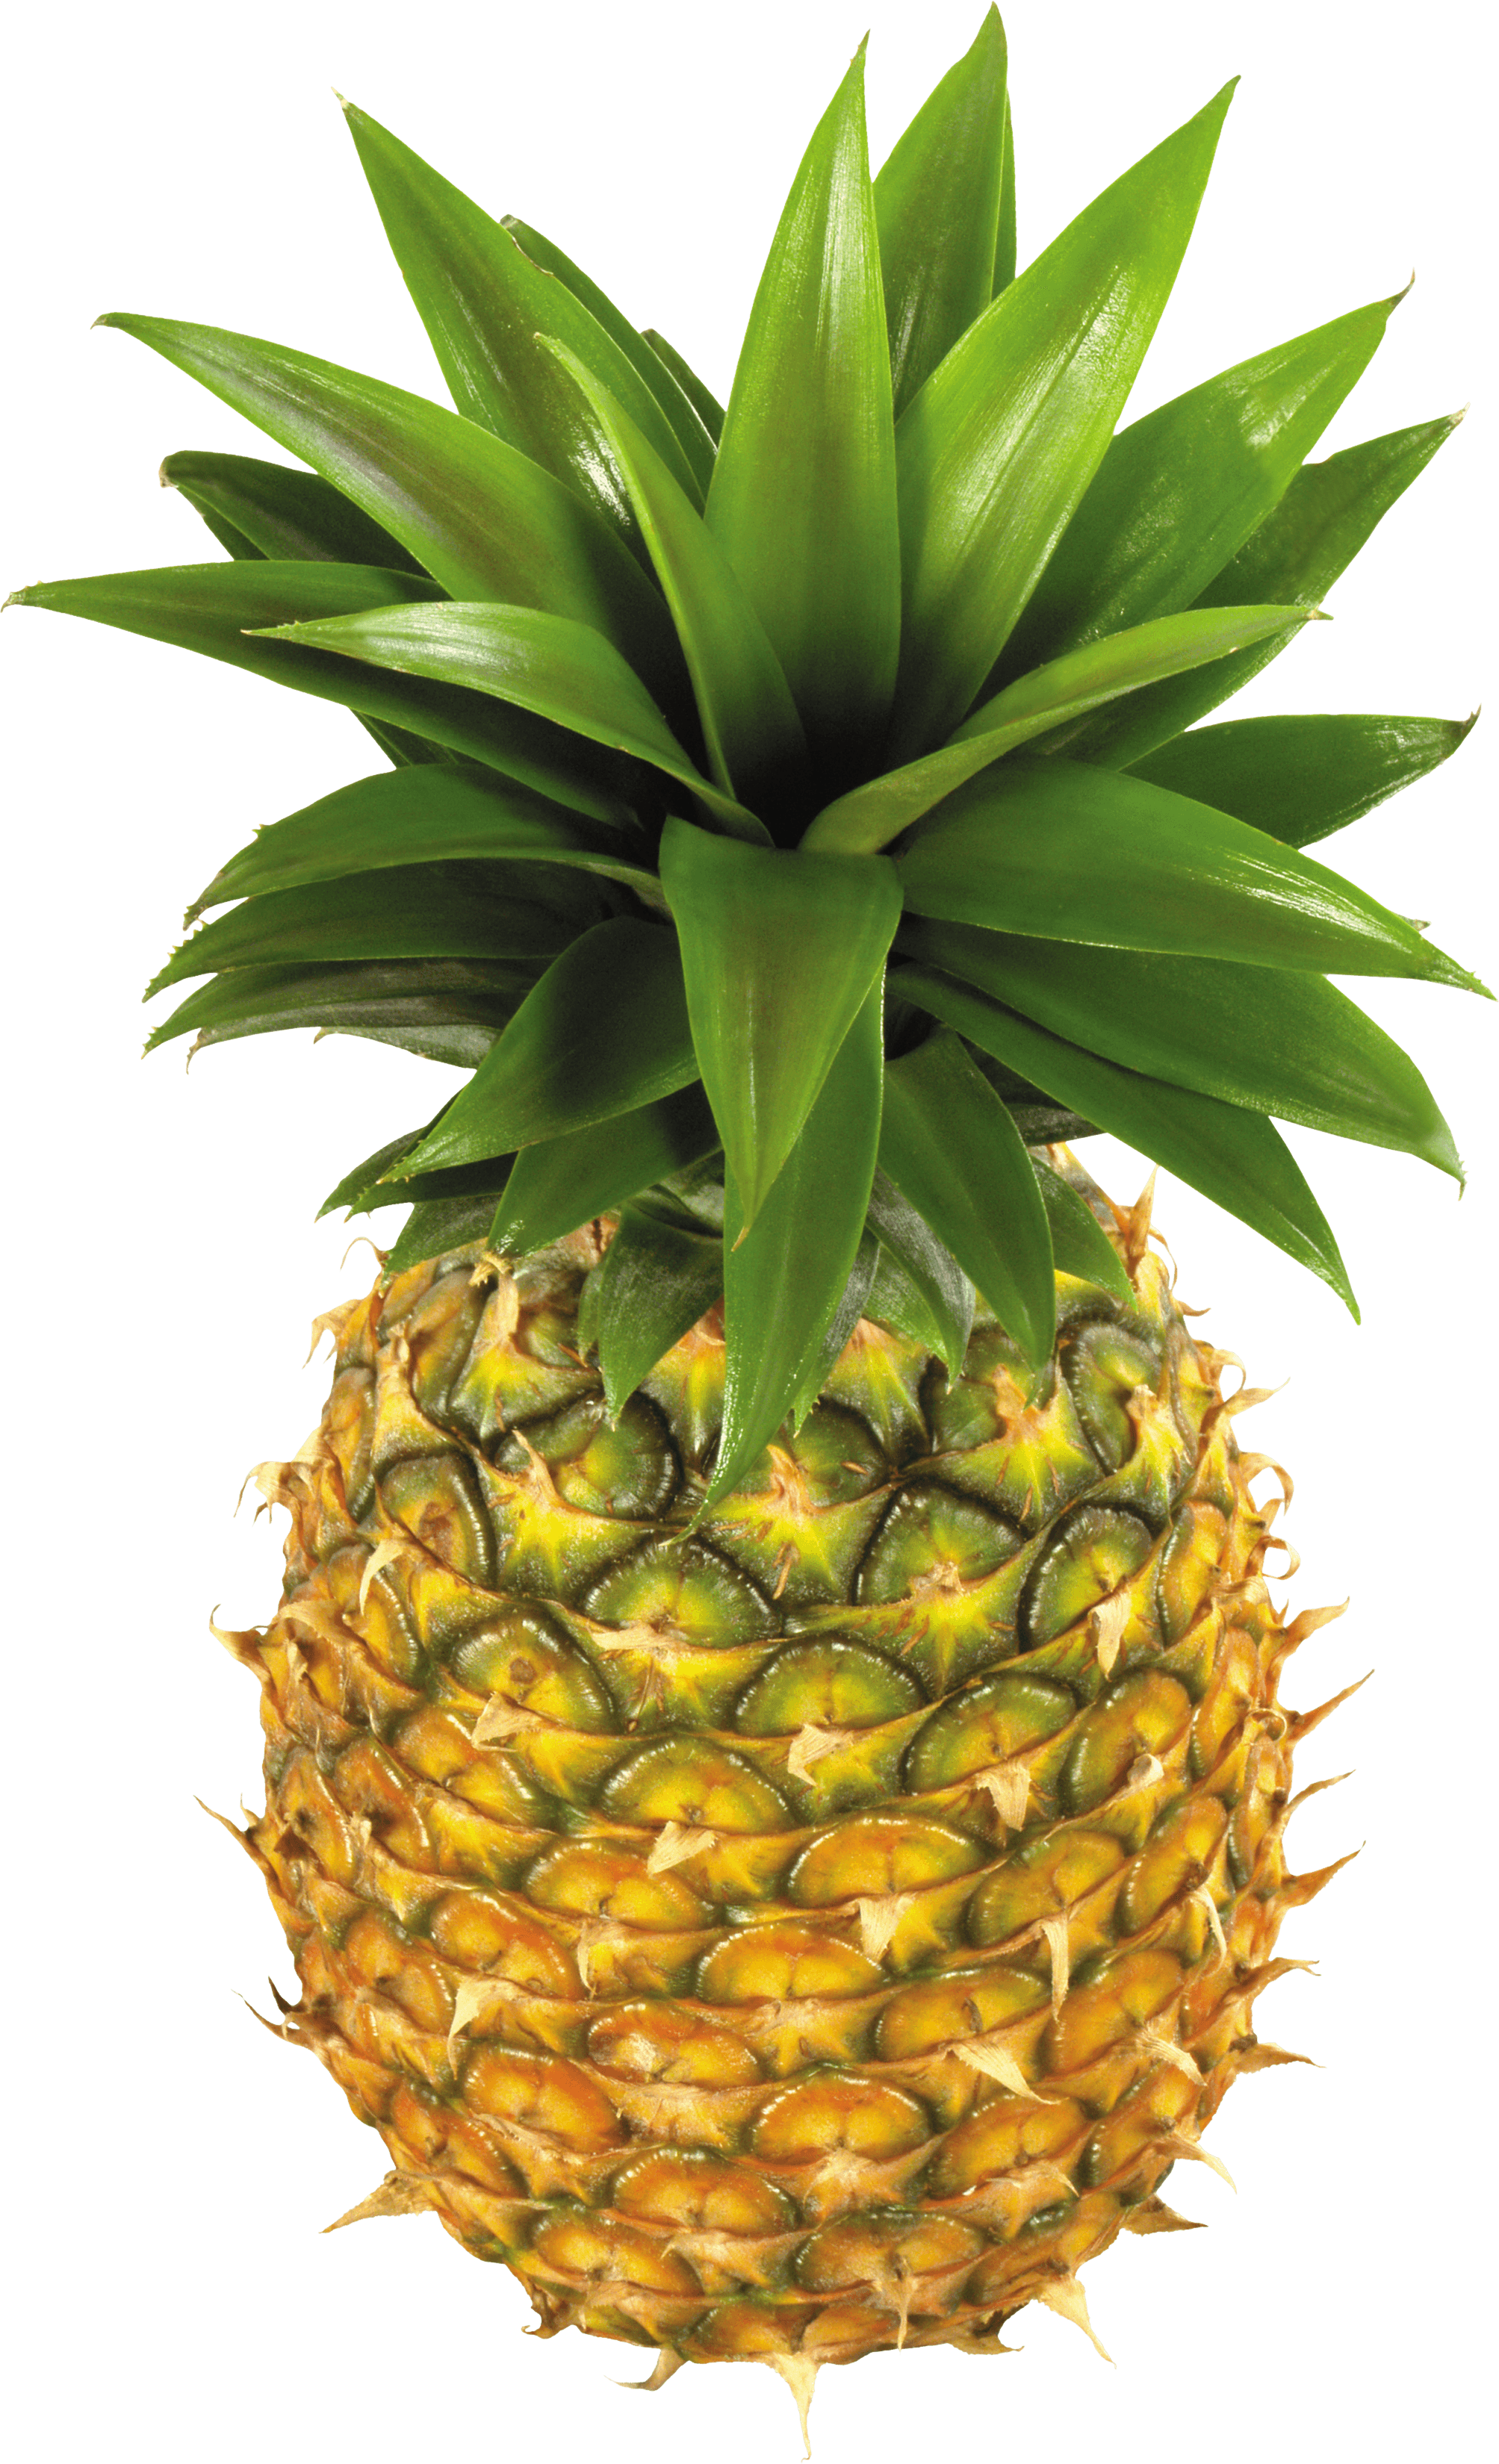 Pineapple Fruit Png Image PNG Image